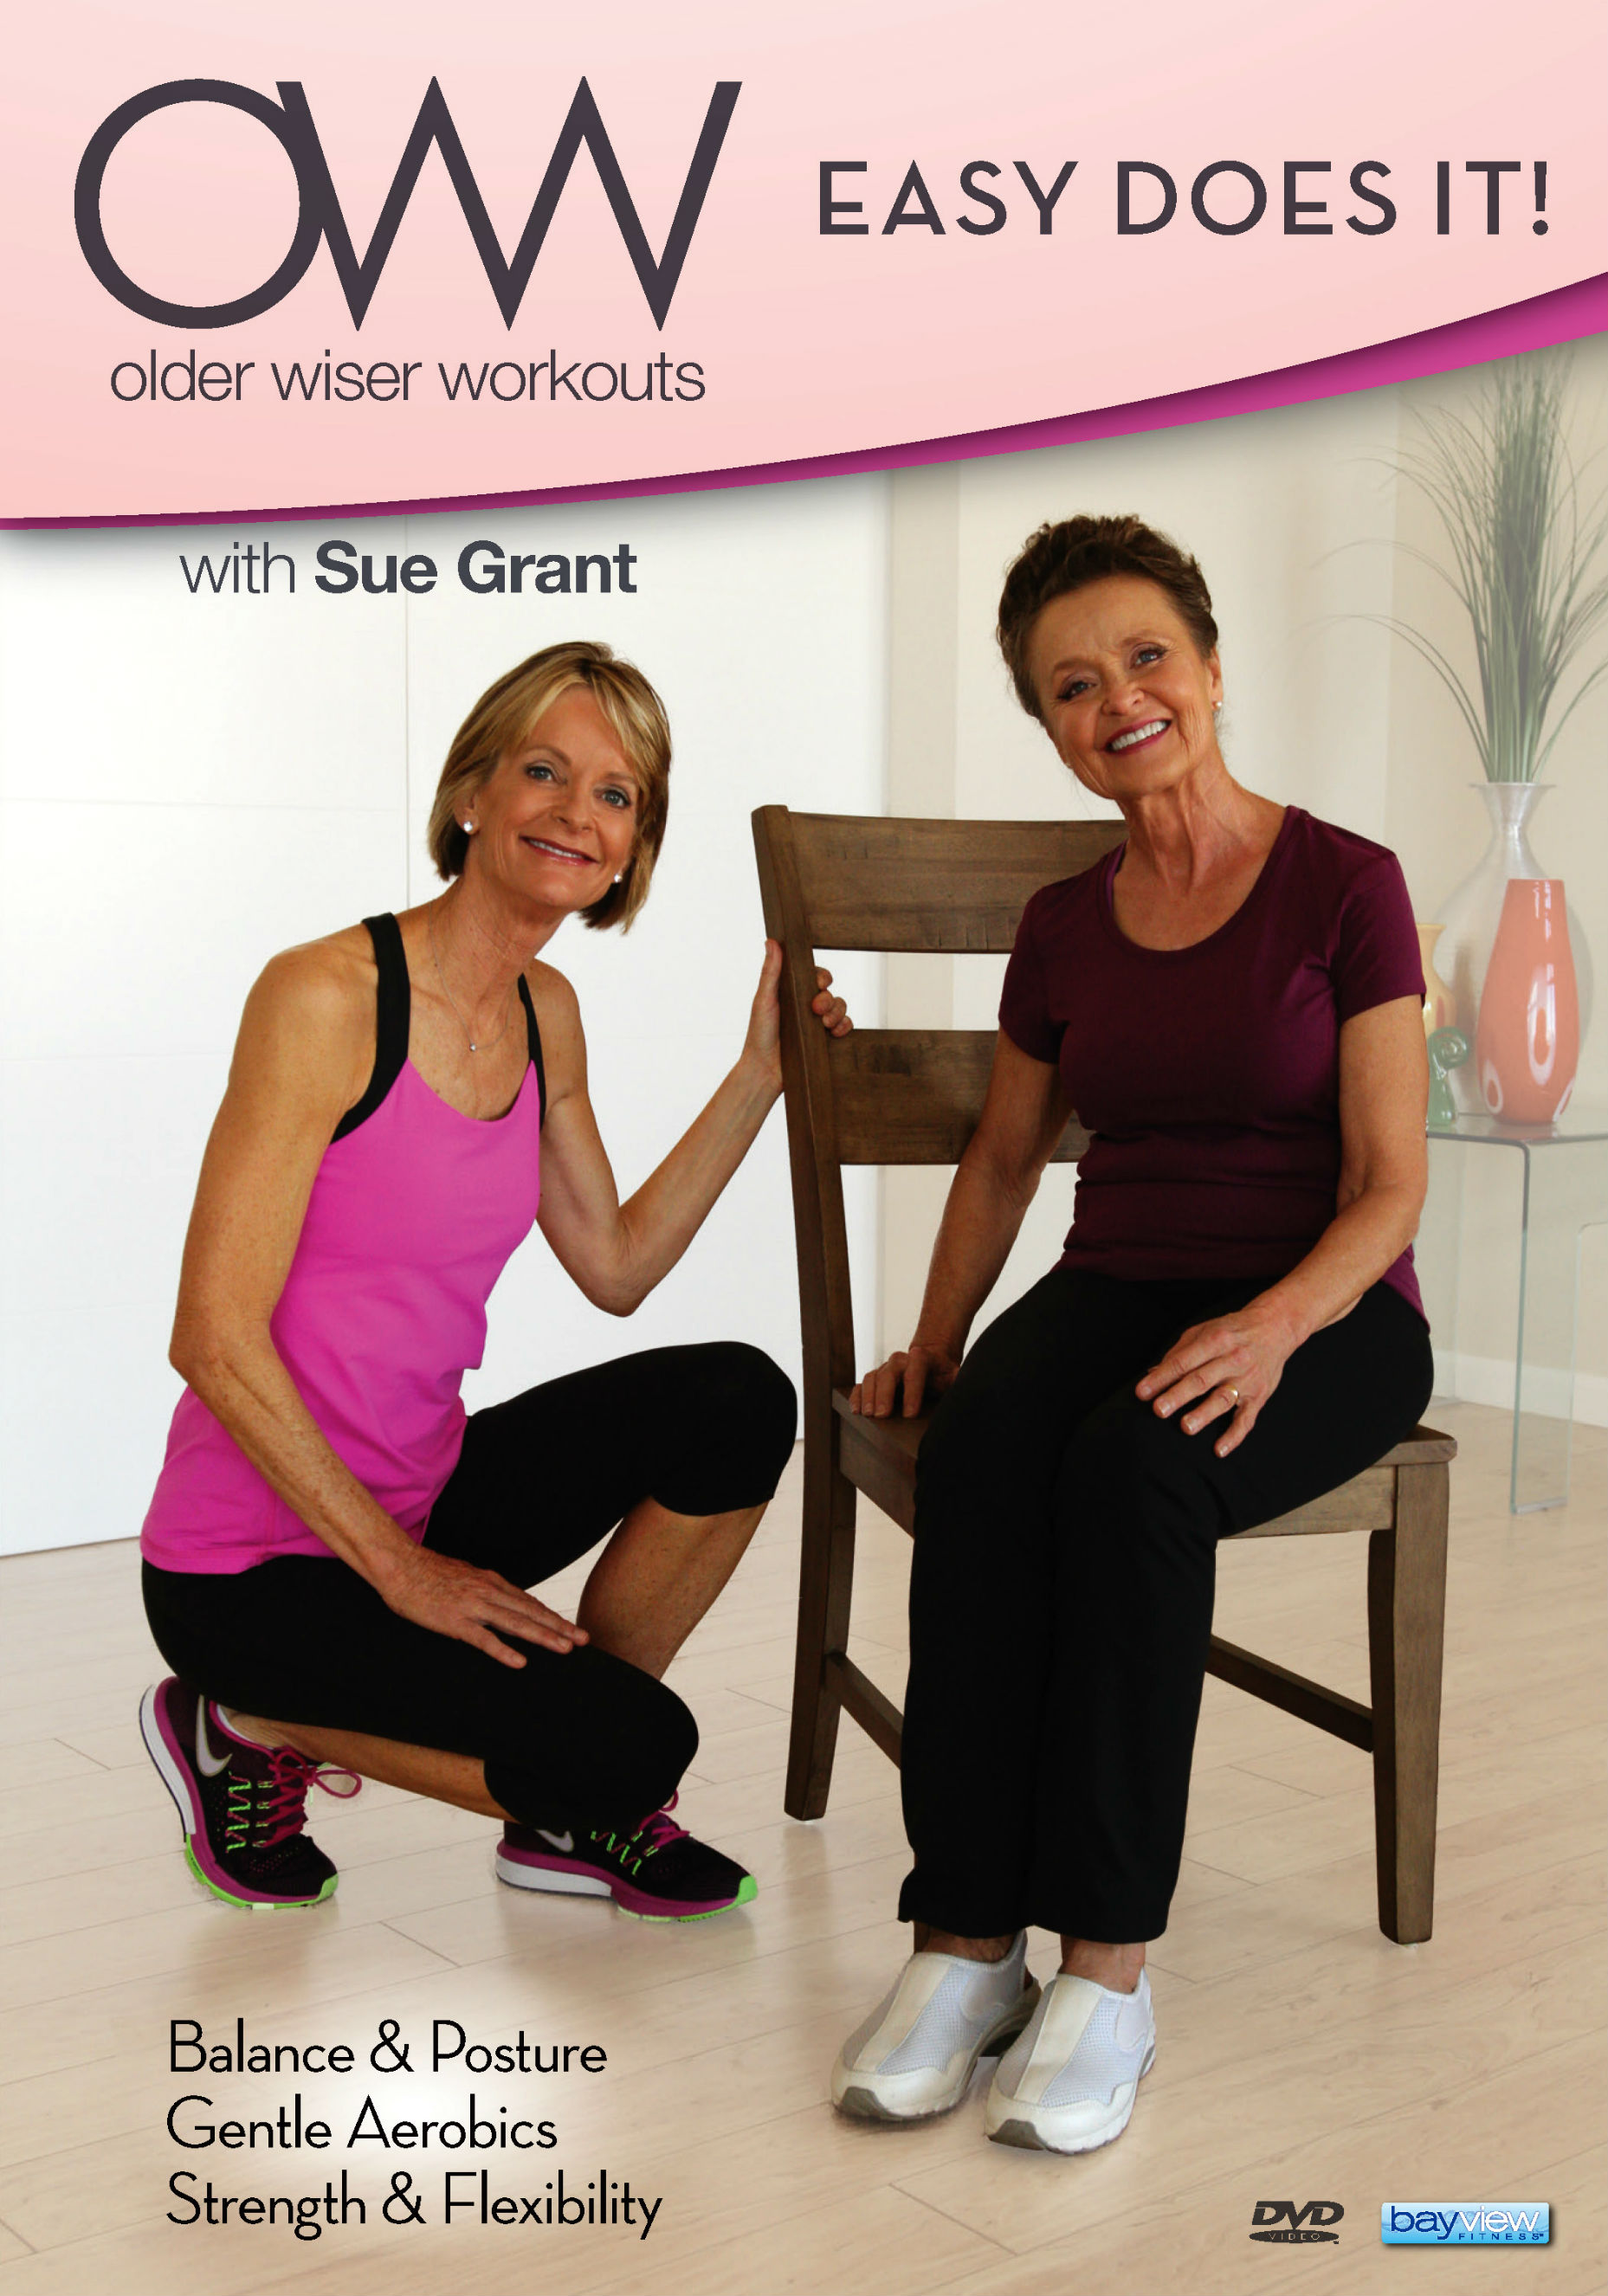 Sue Grant: Older Wiser Workouts: Easy Does It